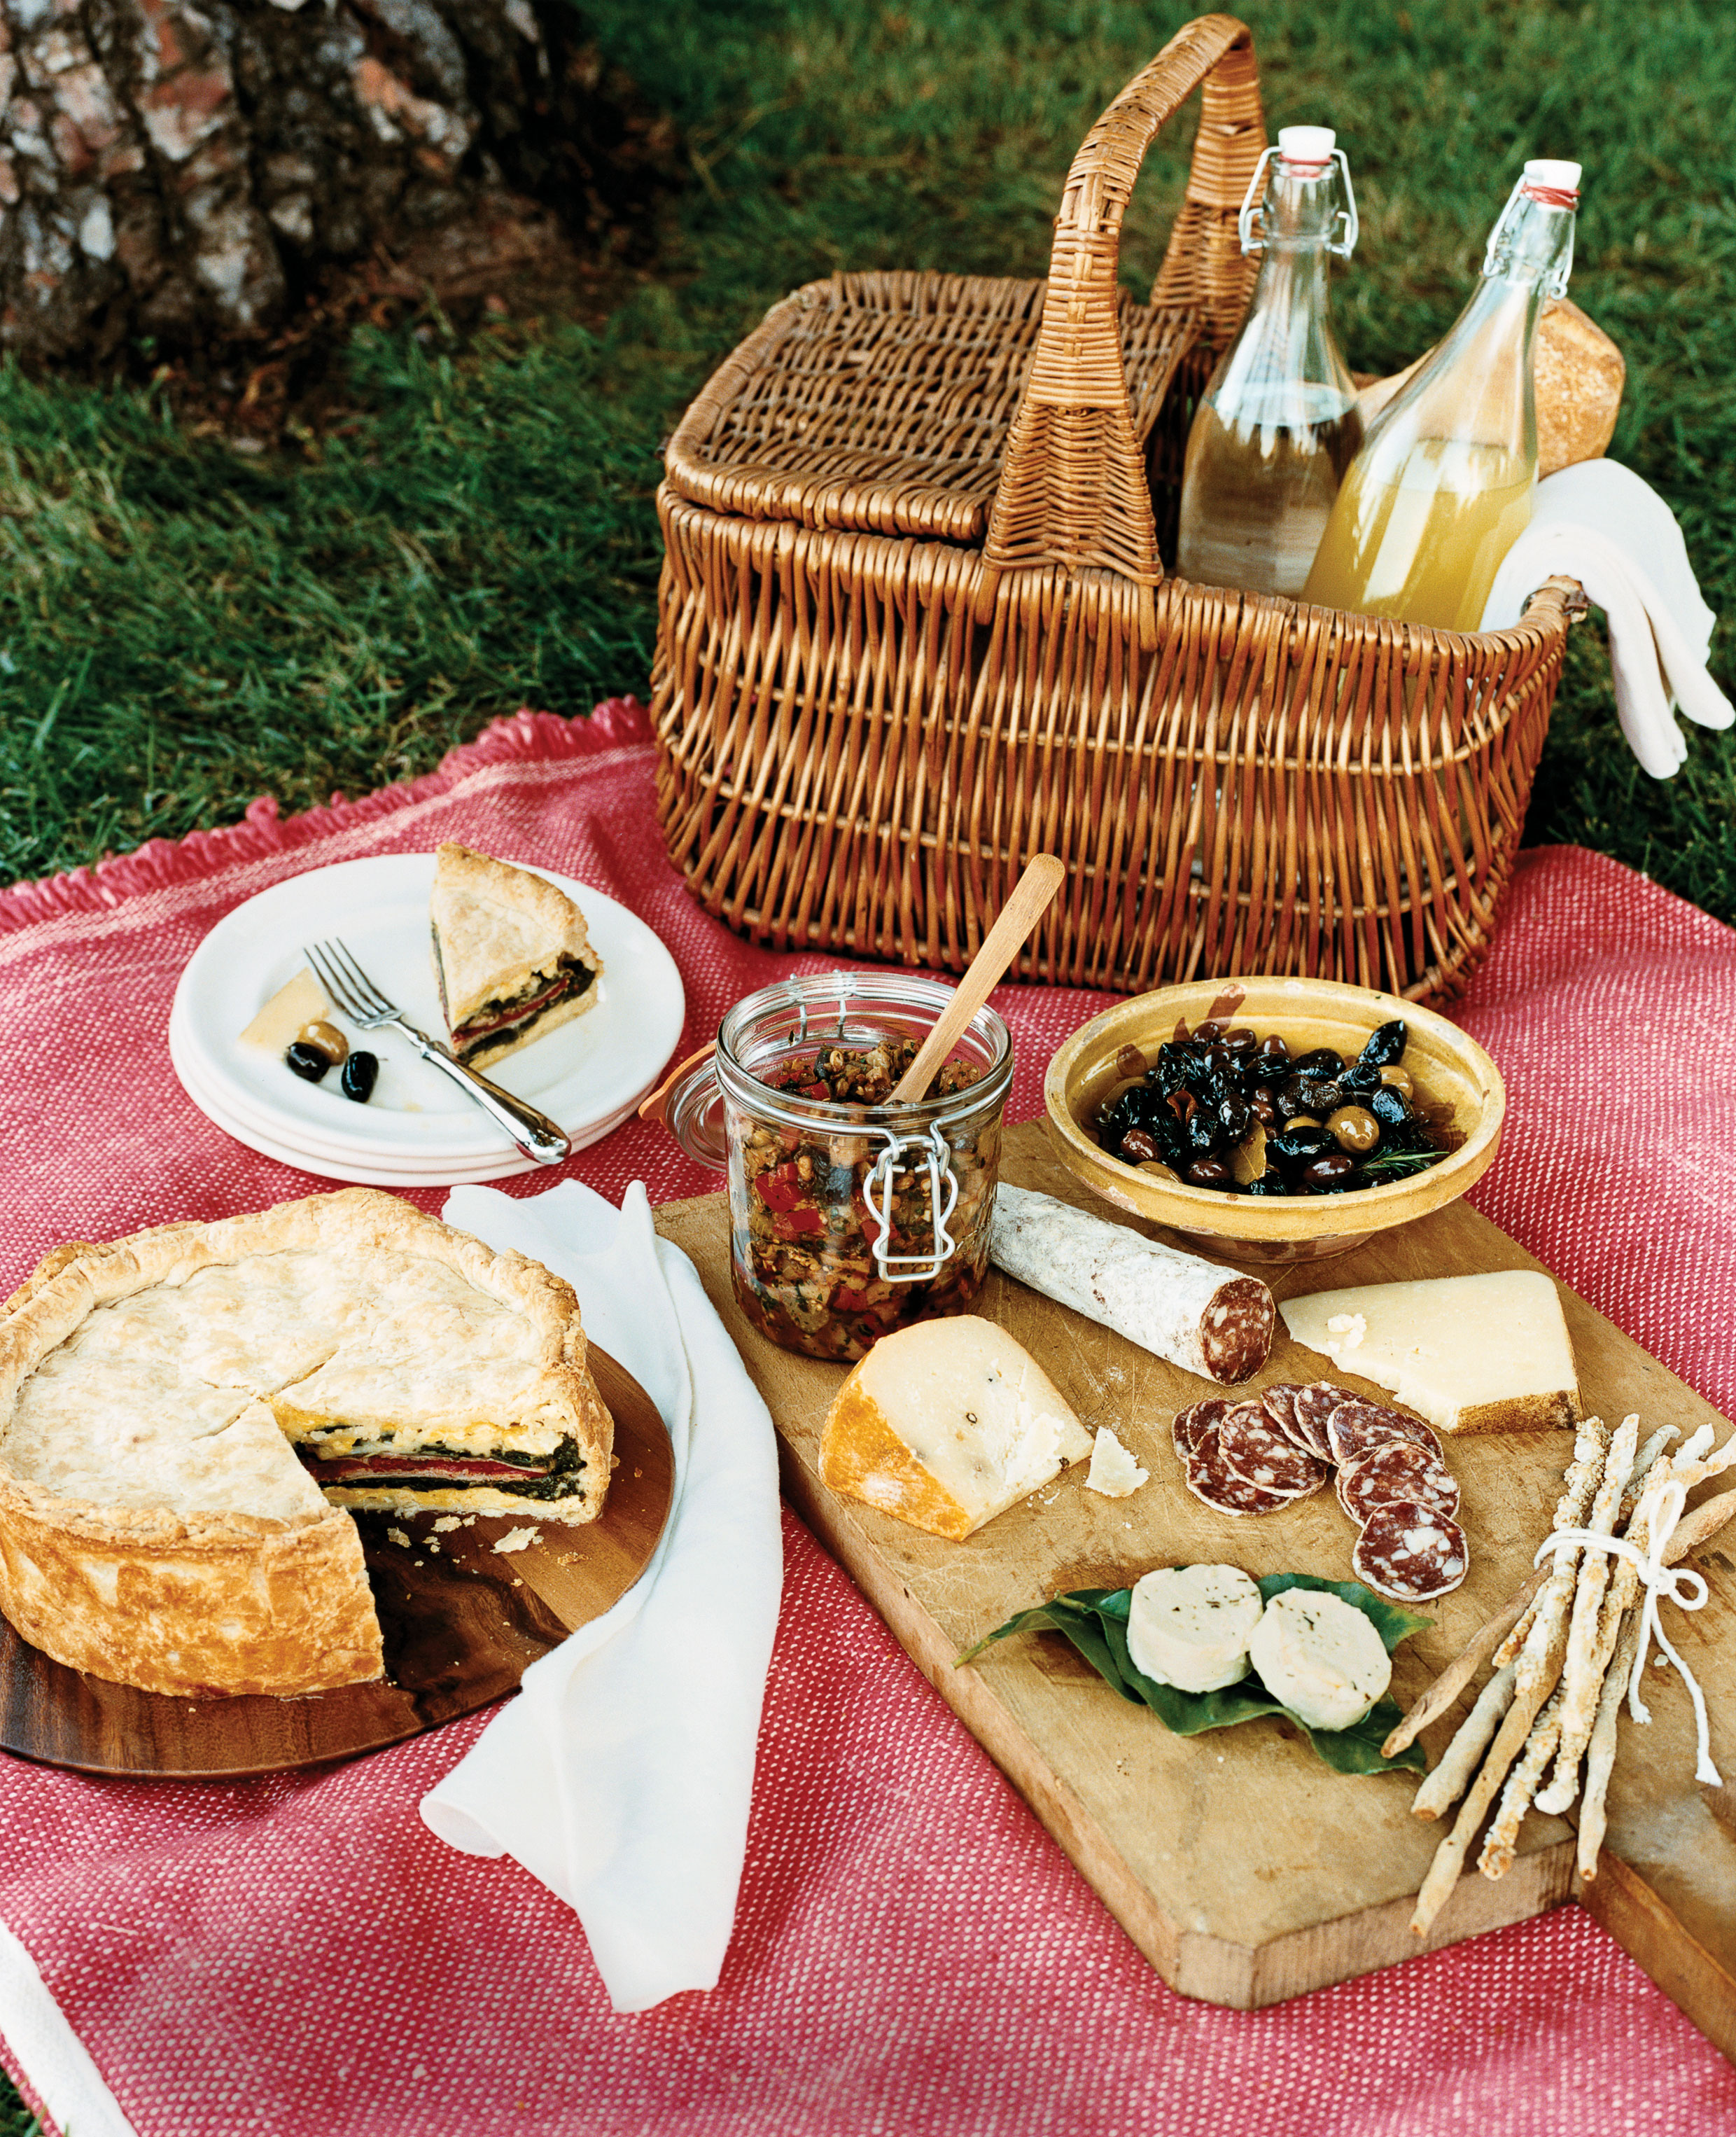 Recipes For An Italian Picnic